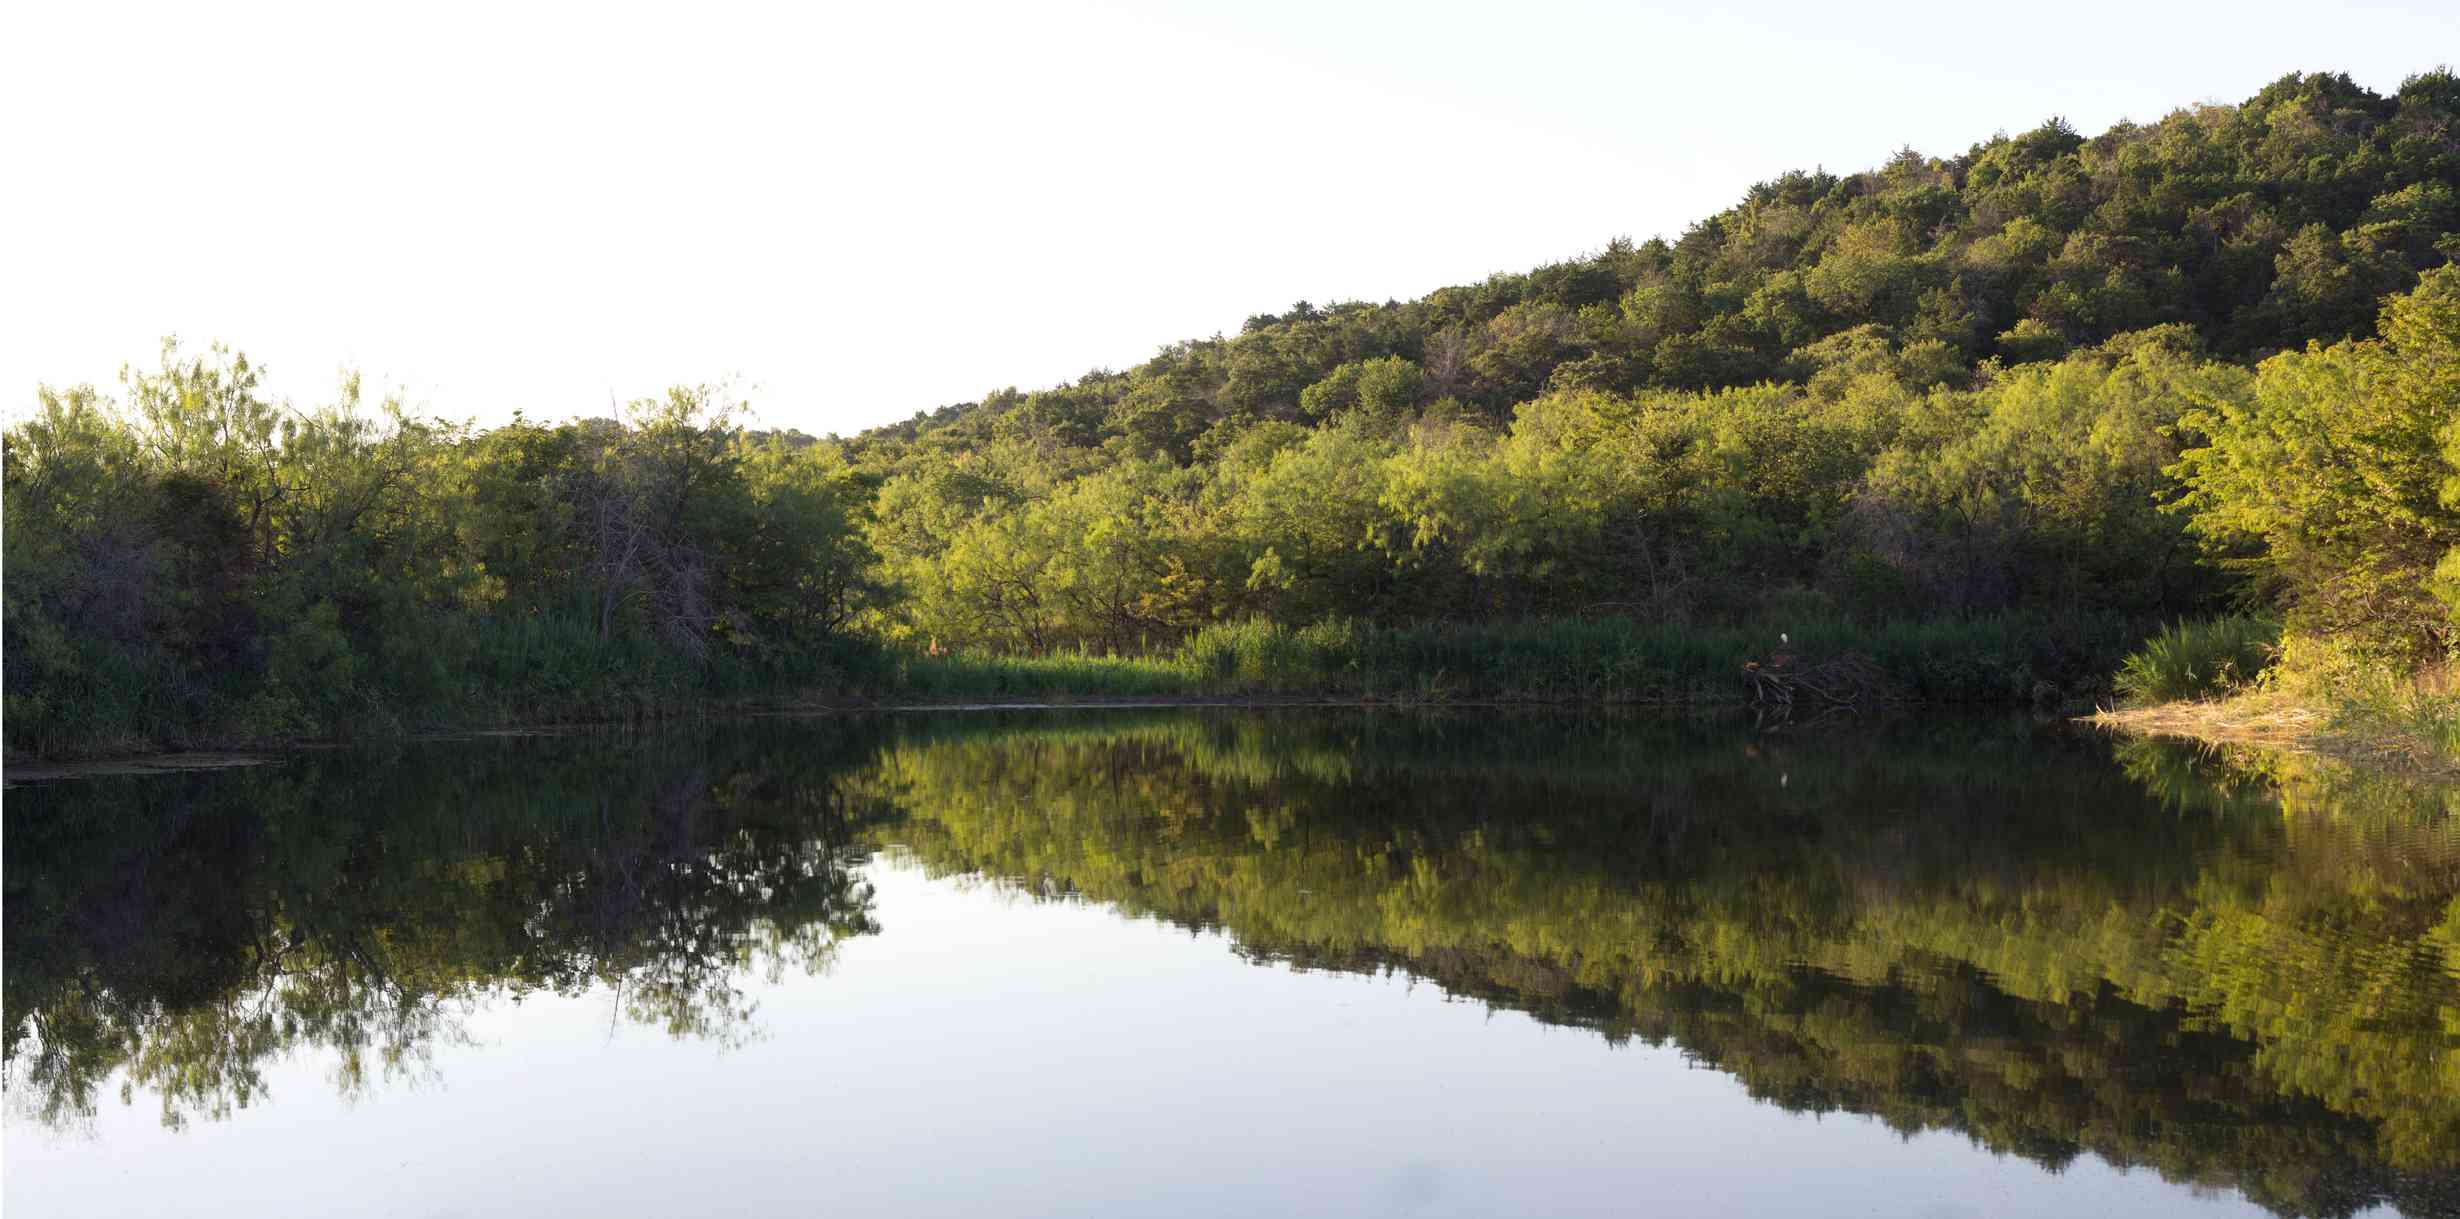 Scenic View Of Lake Amidst Trees Against Clear Sky At Cedar Ridge Preserve